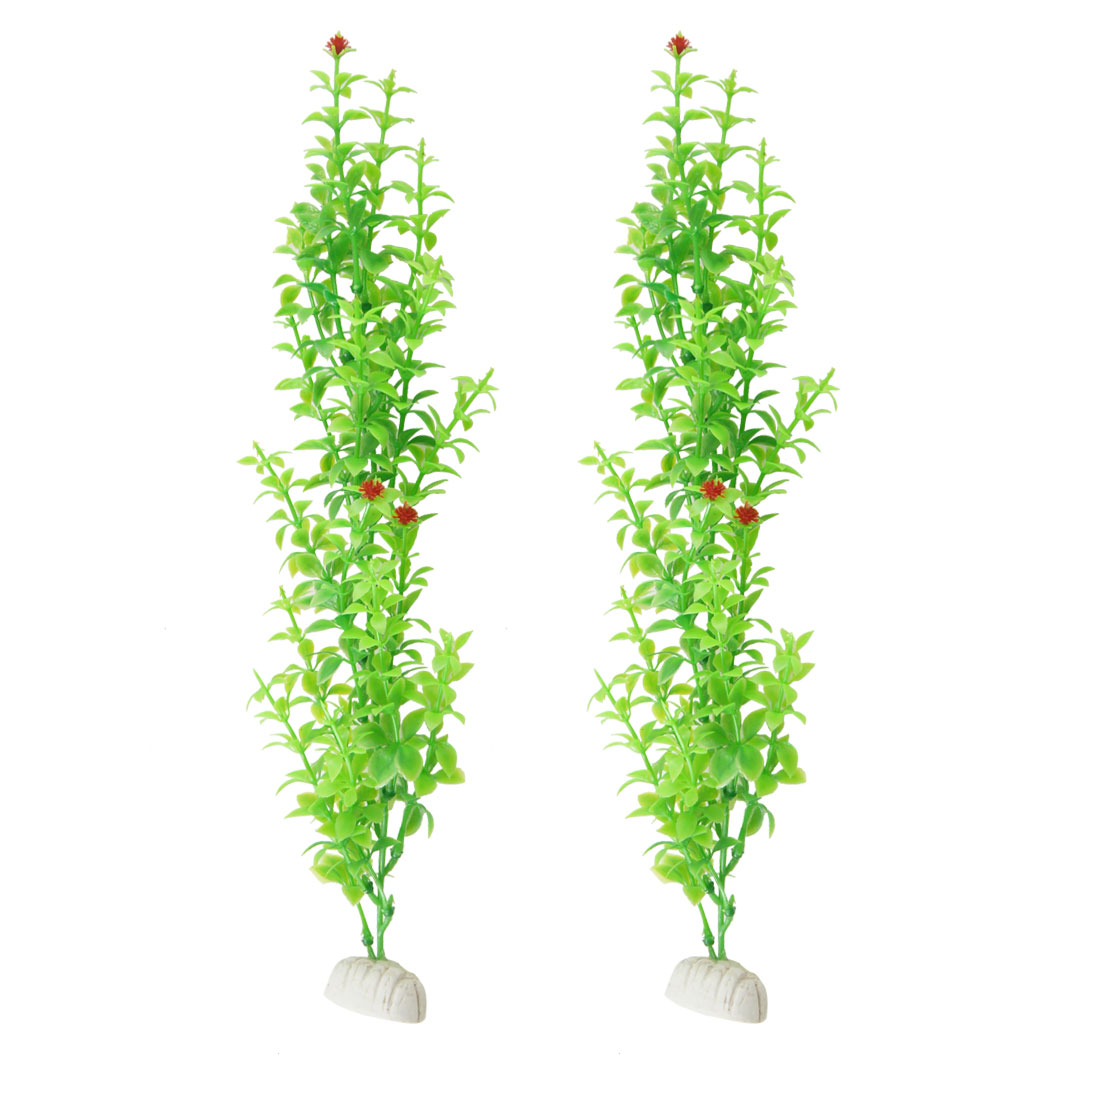 "2 Pcs Fish Tank 13.8"" Height Artificial Green Grass w Red Flower"